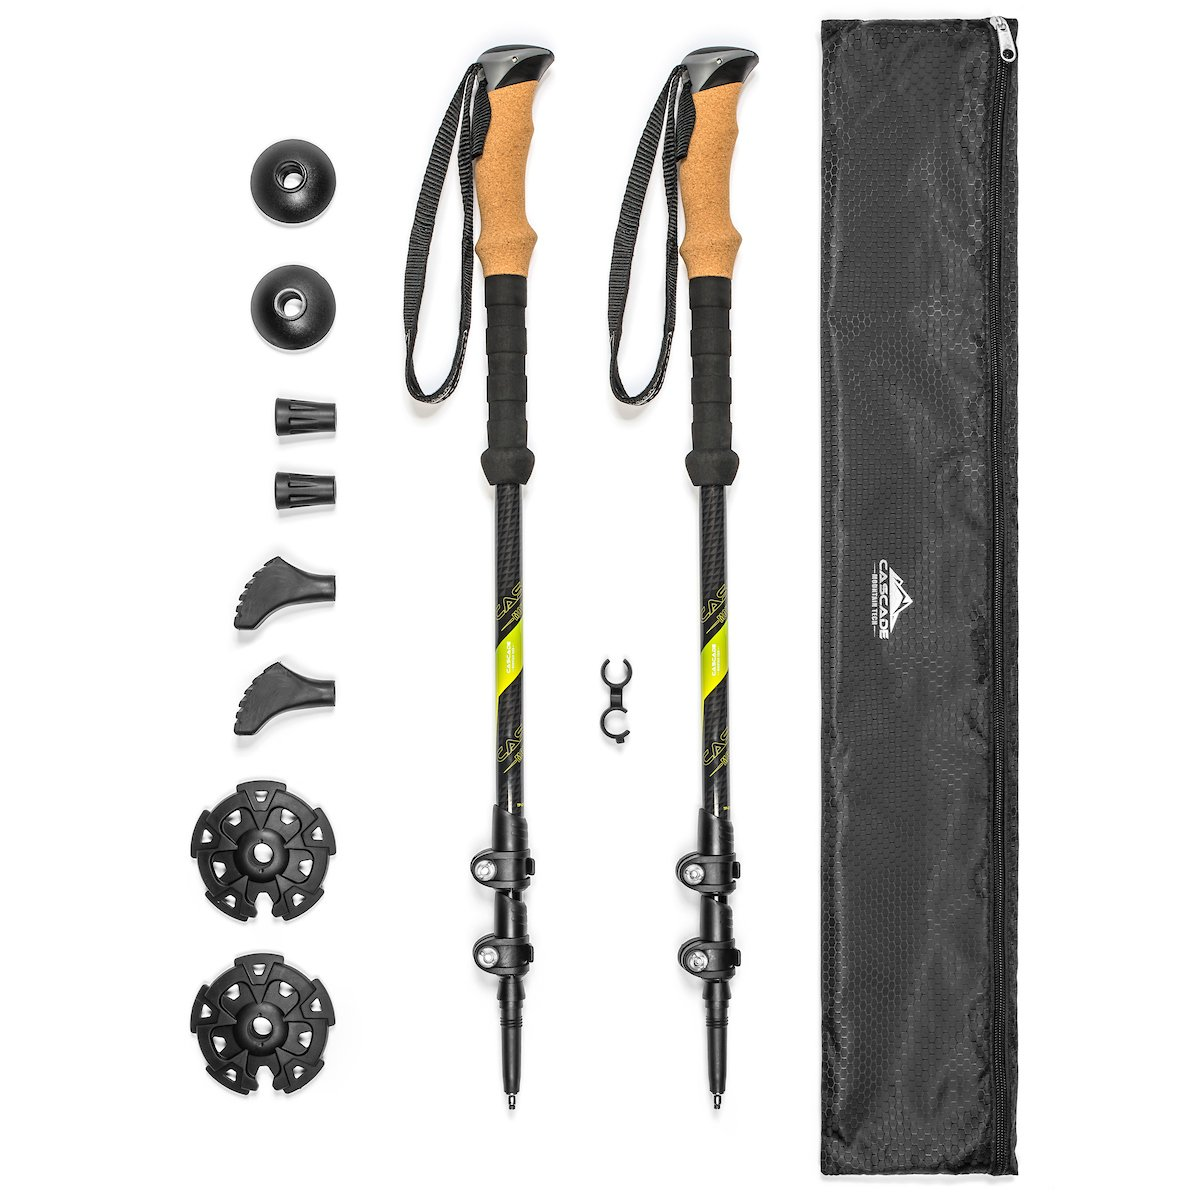 Cascade Mountain Tech Carbon Fiber Trekking Poles - Best Hiking Gear